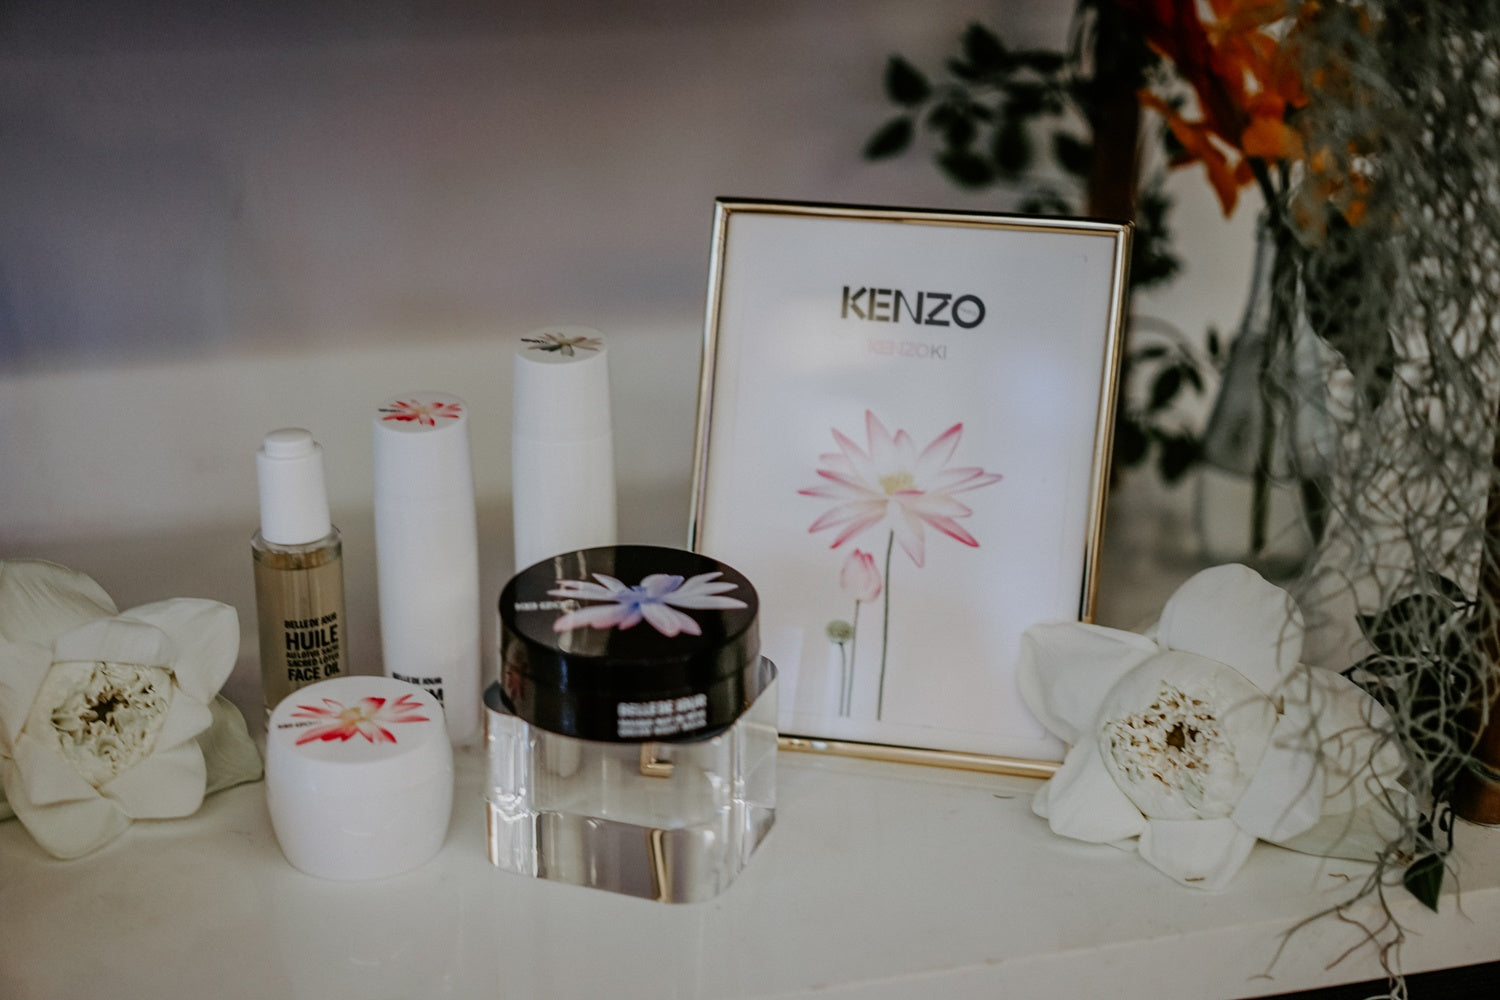 Kenzo picture frame and skincare items with white lotus bud on table